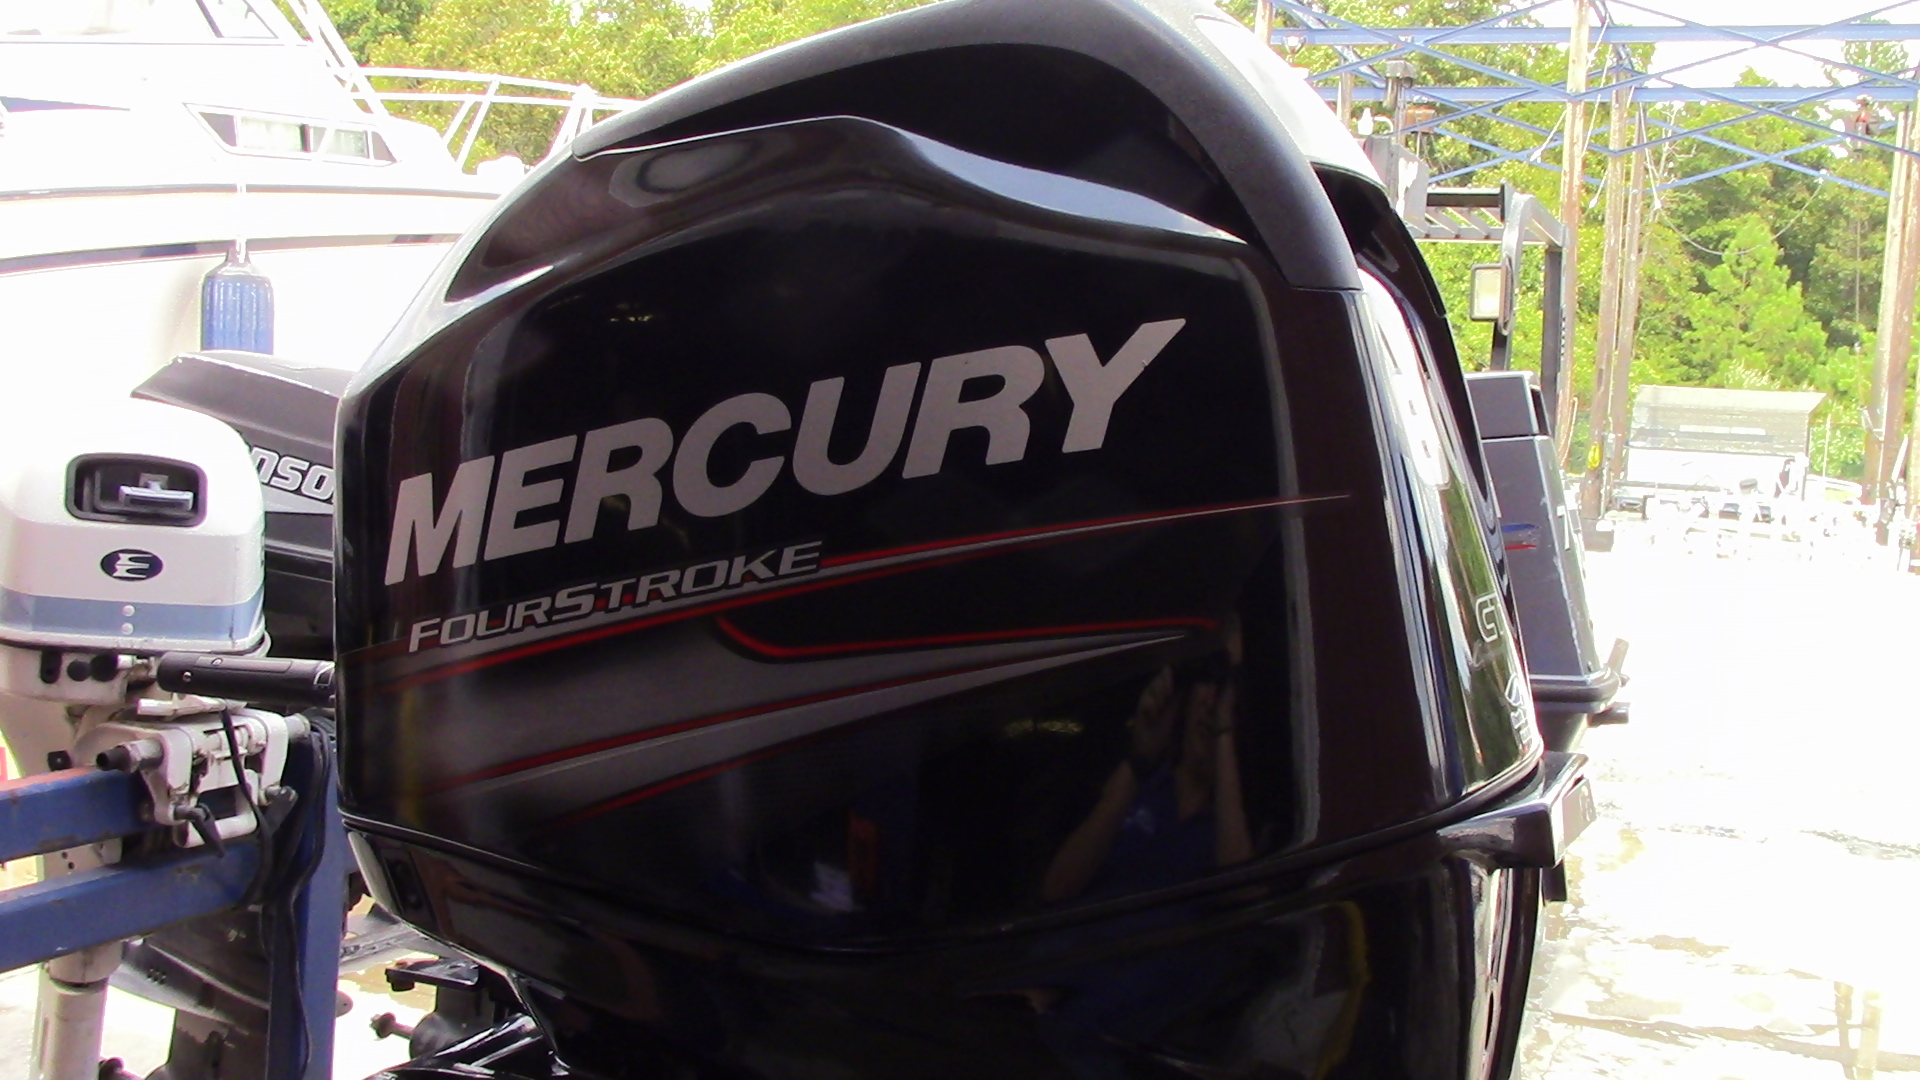 Used 2014 mercury 60elpt ct 60hp command thrust 4 stroke for Buy new mercury outboard motor